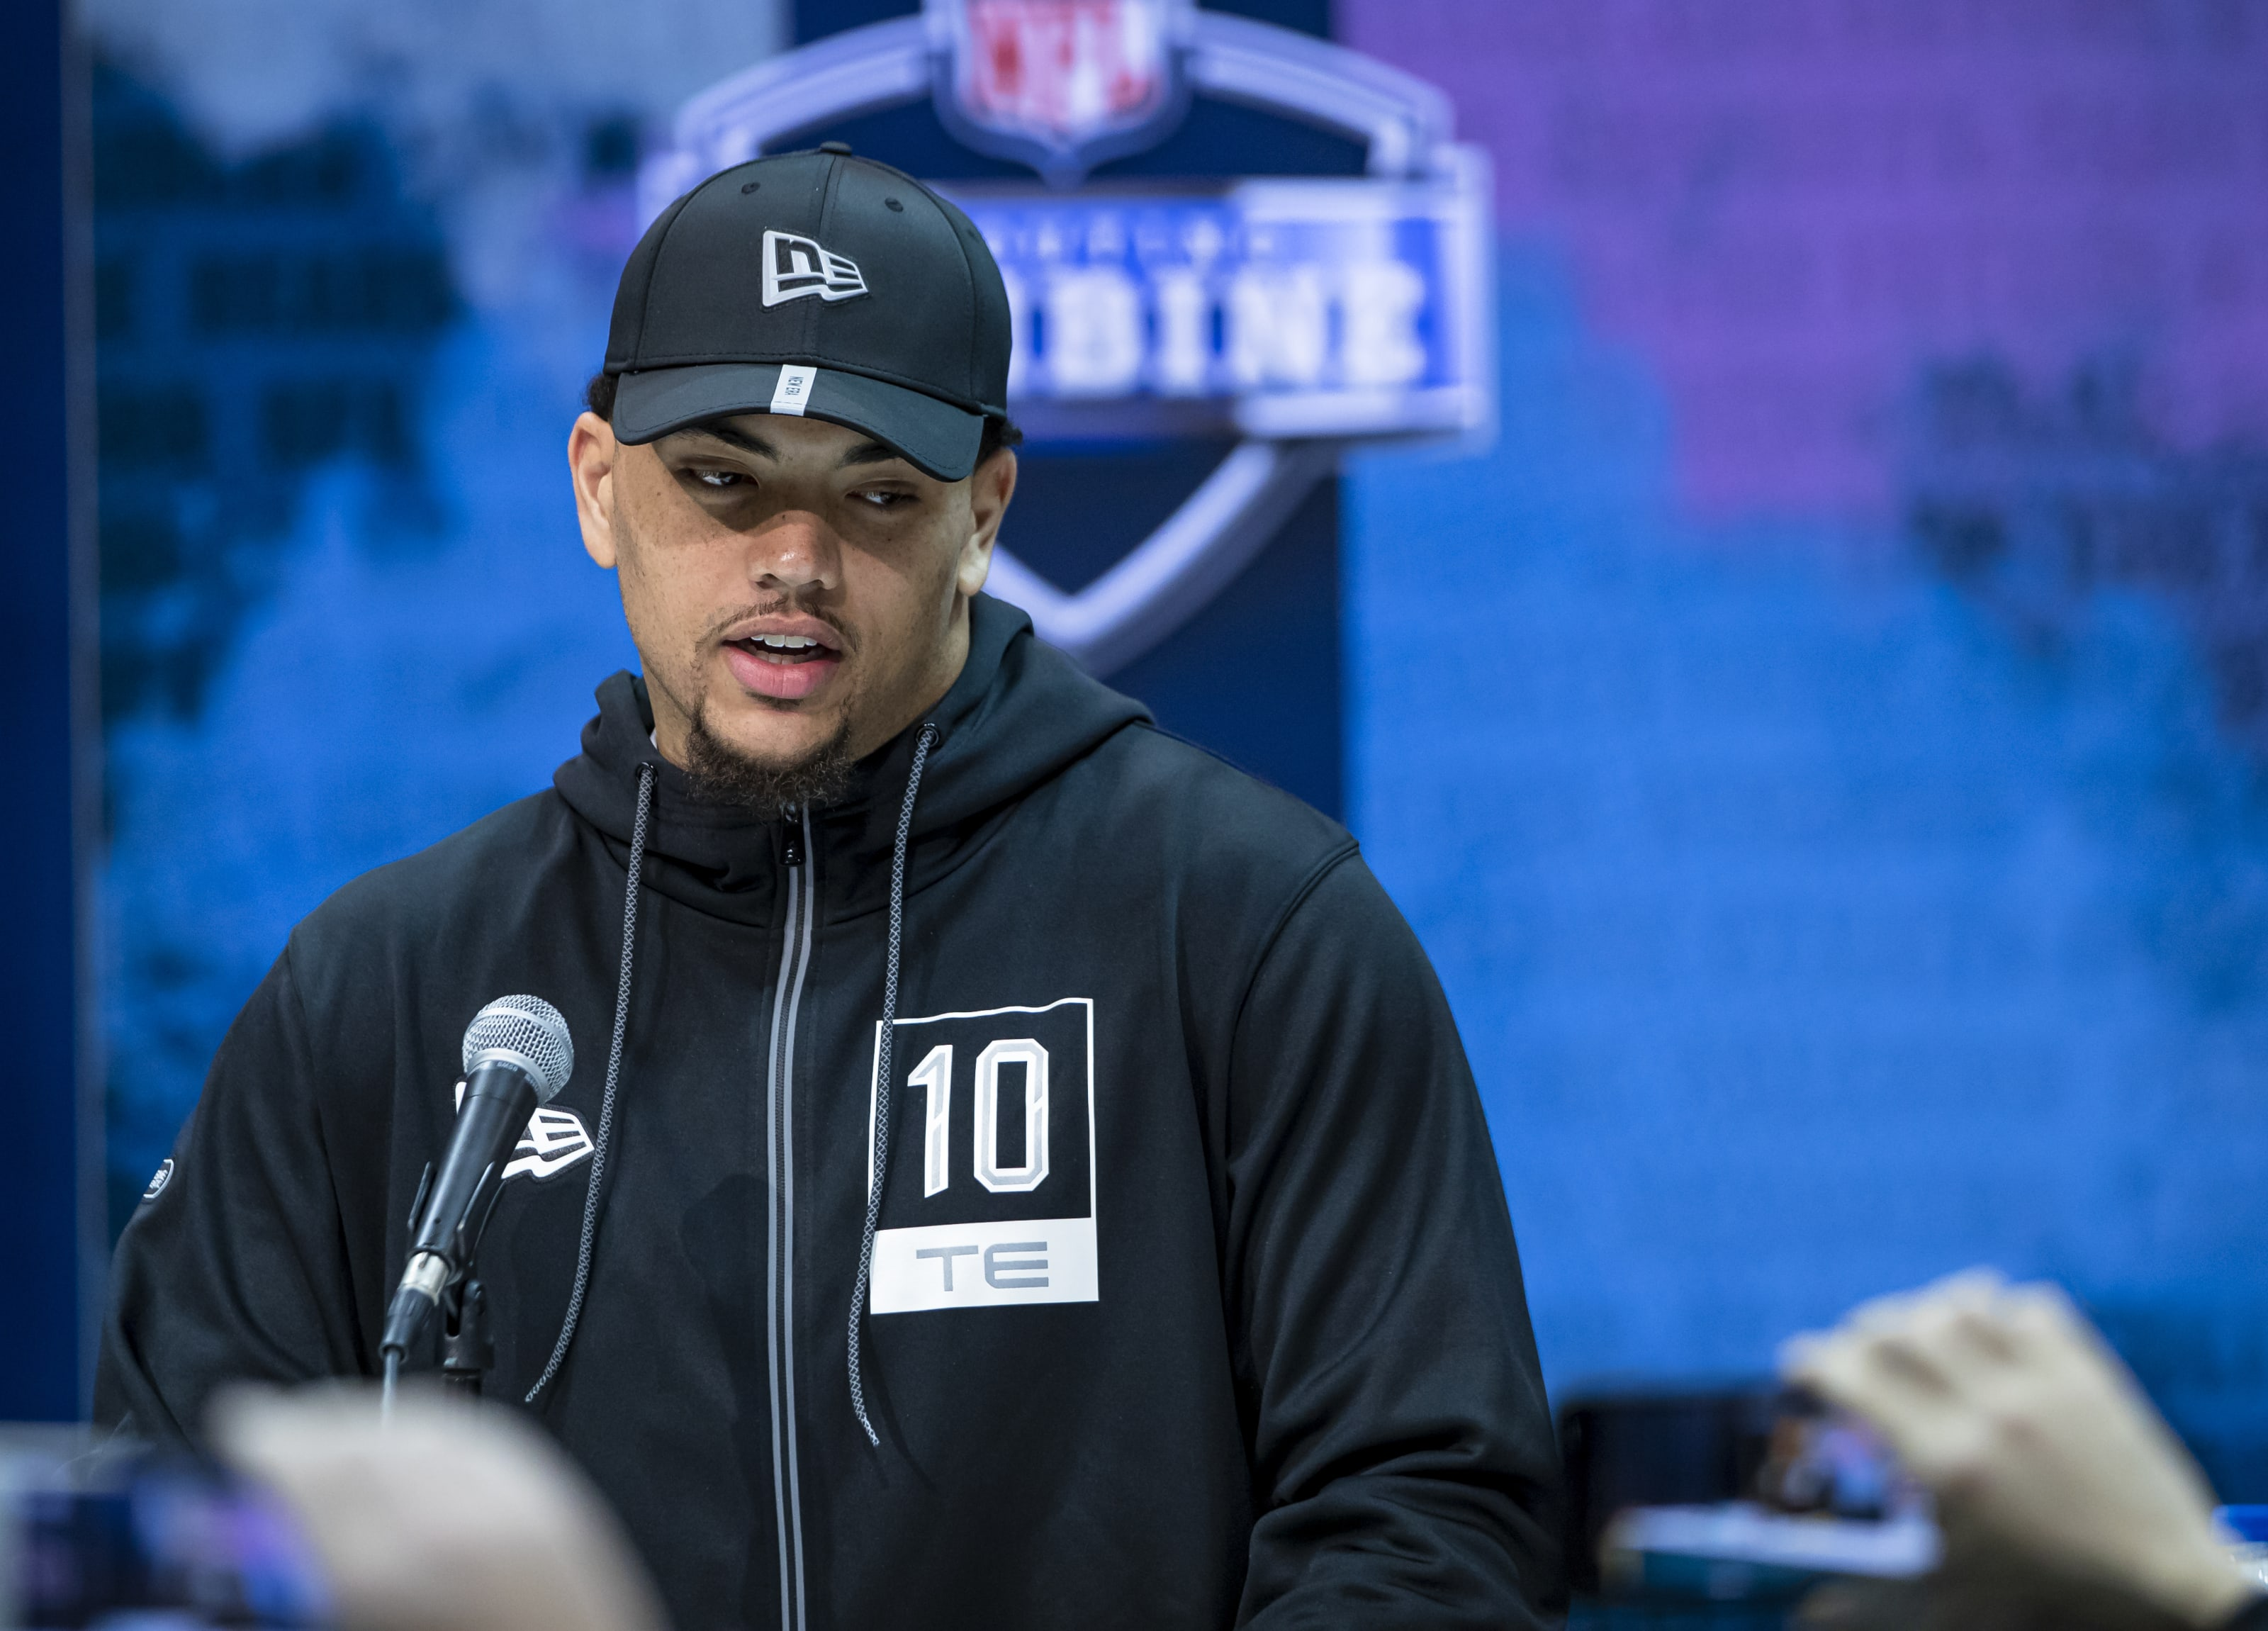 Thaddeus Moss at the NFL Combine